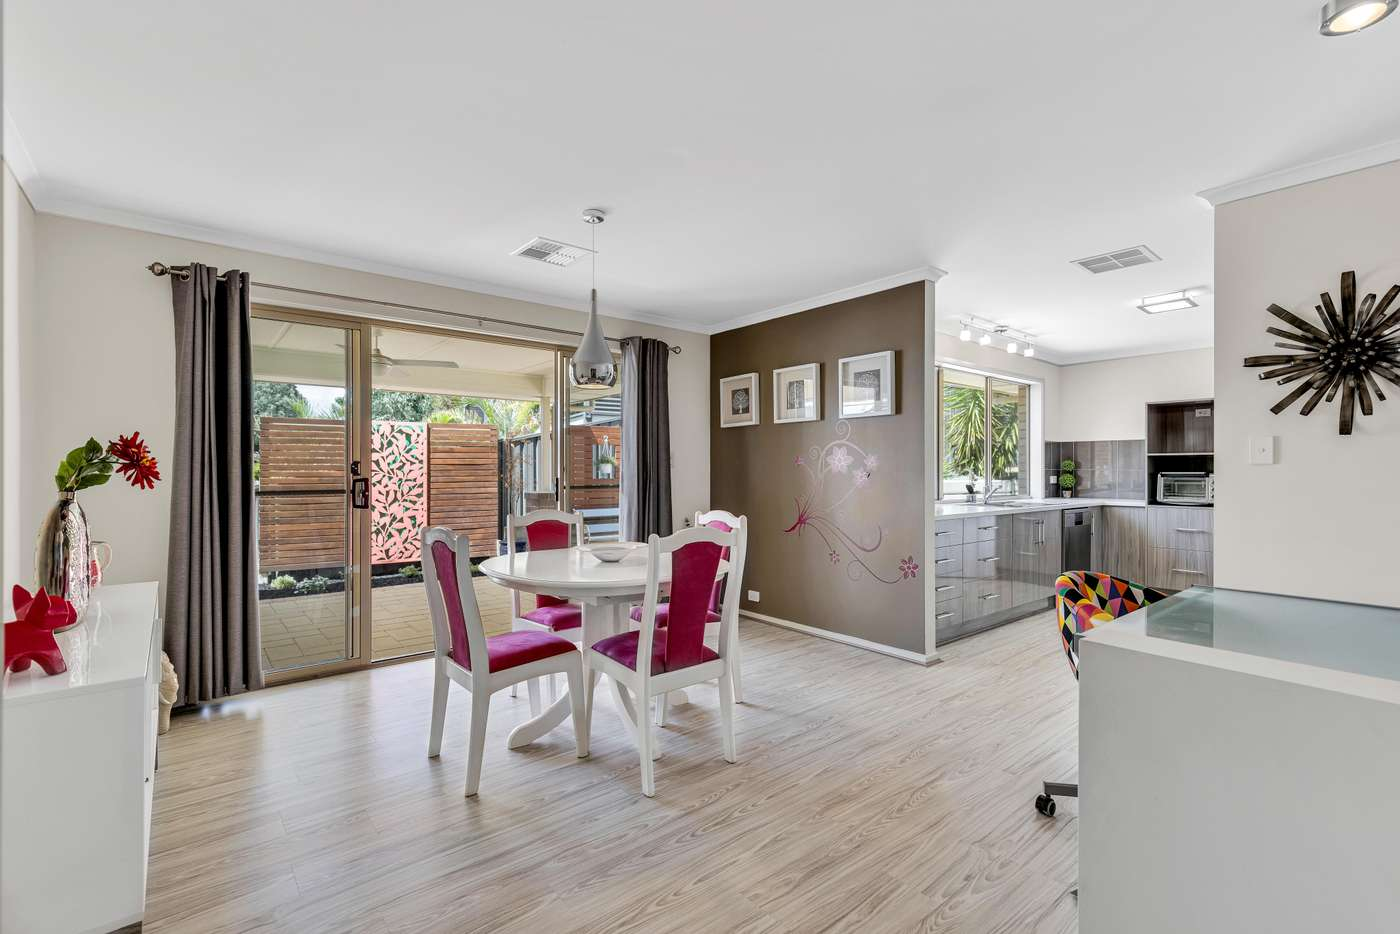 Sixth view of Homely house listing, 39A Peters Terrace, Mount Compass SA 5210